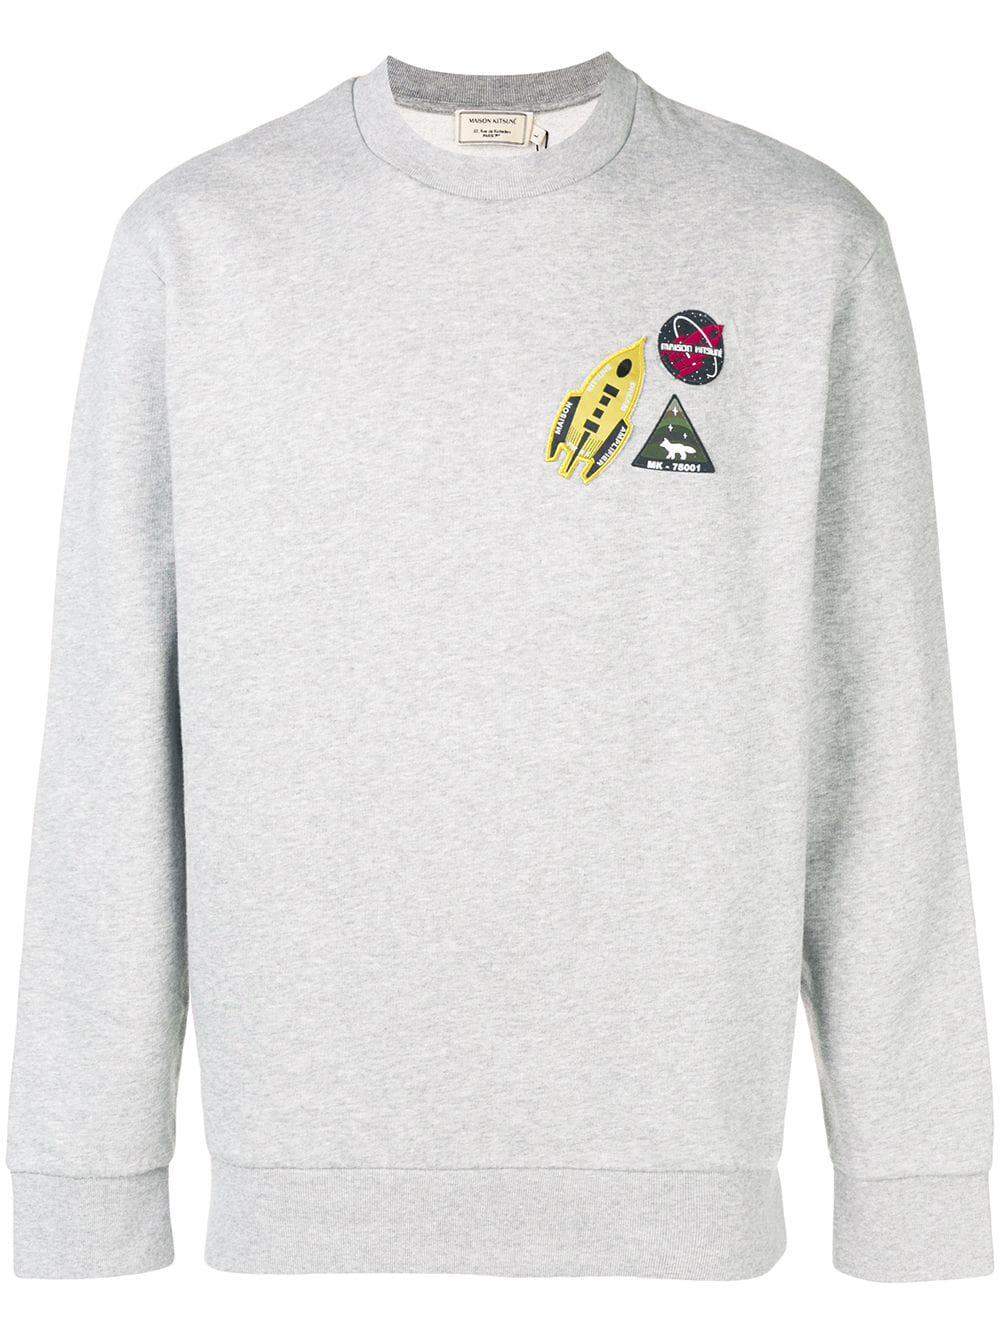 Maison KitsunÉ Logo Patches Sweatshirt In Grey